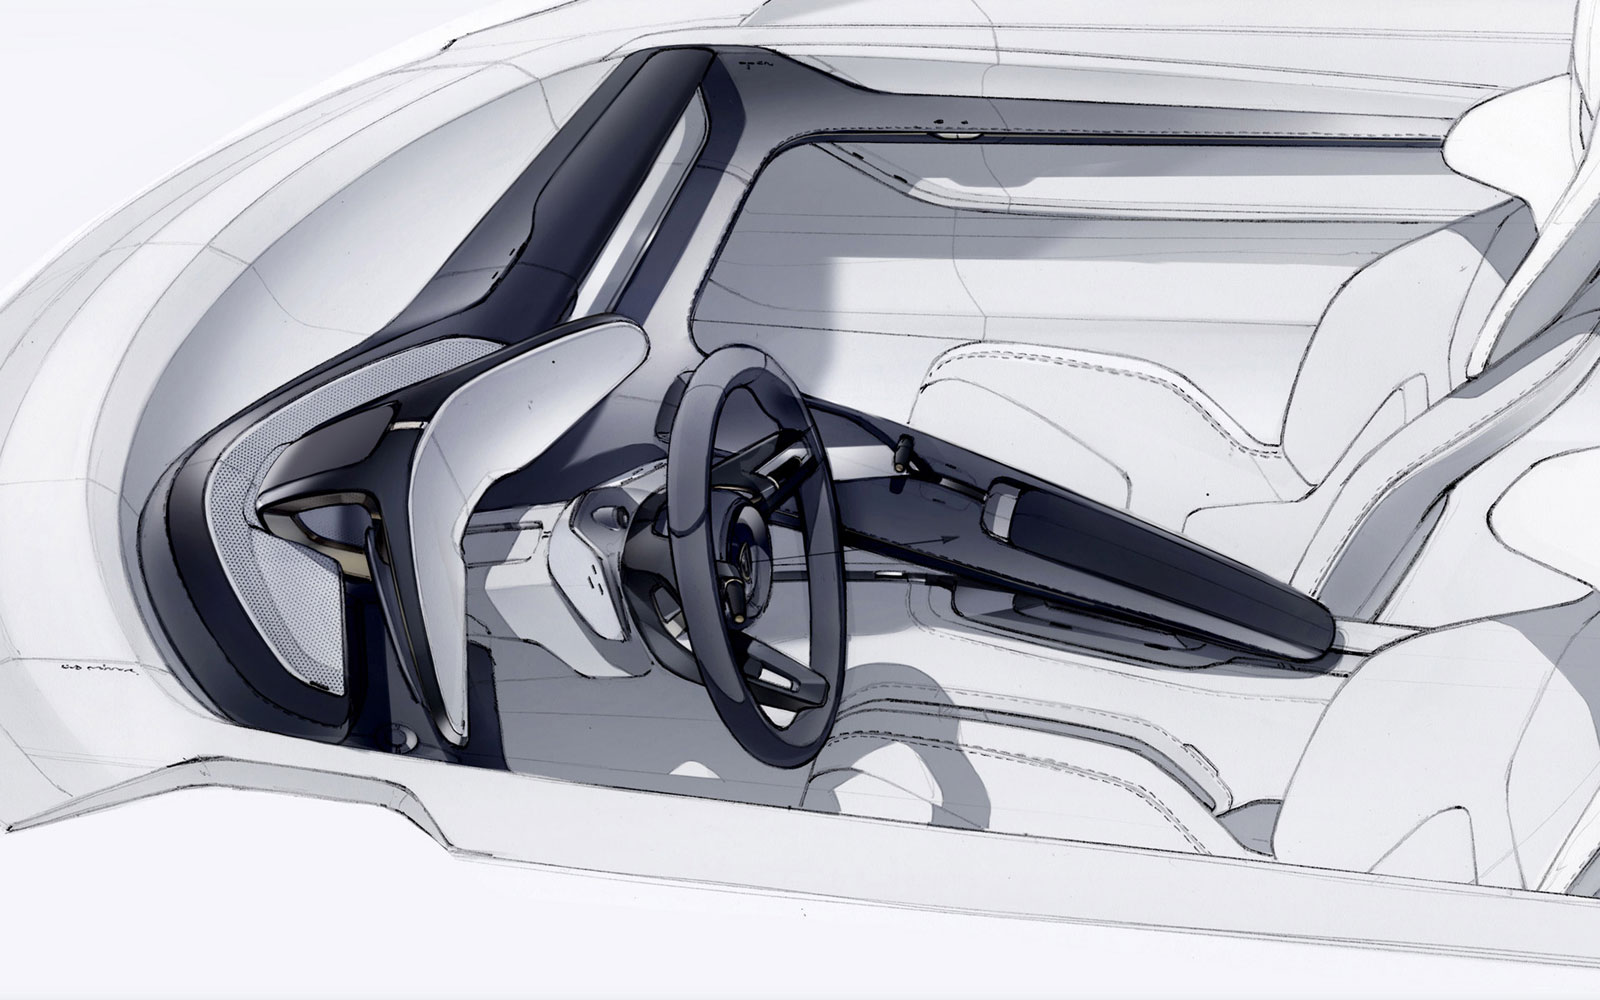 Porsche mission e concept interior design sketch car - Car interior design ...